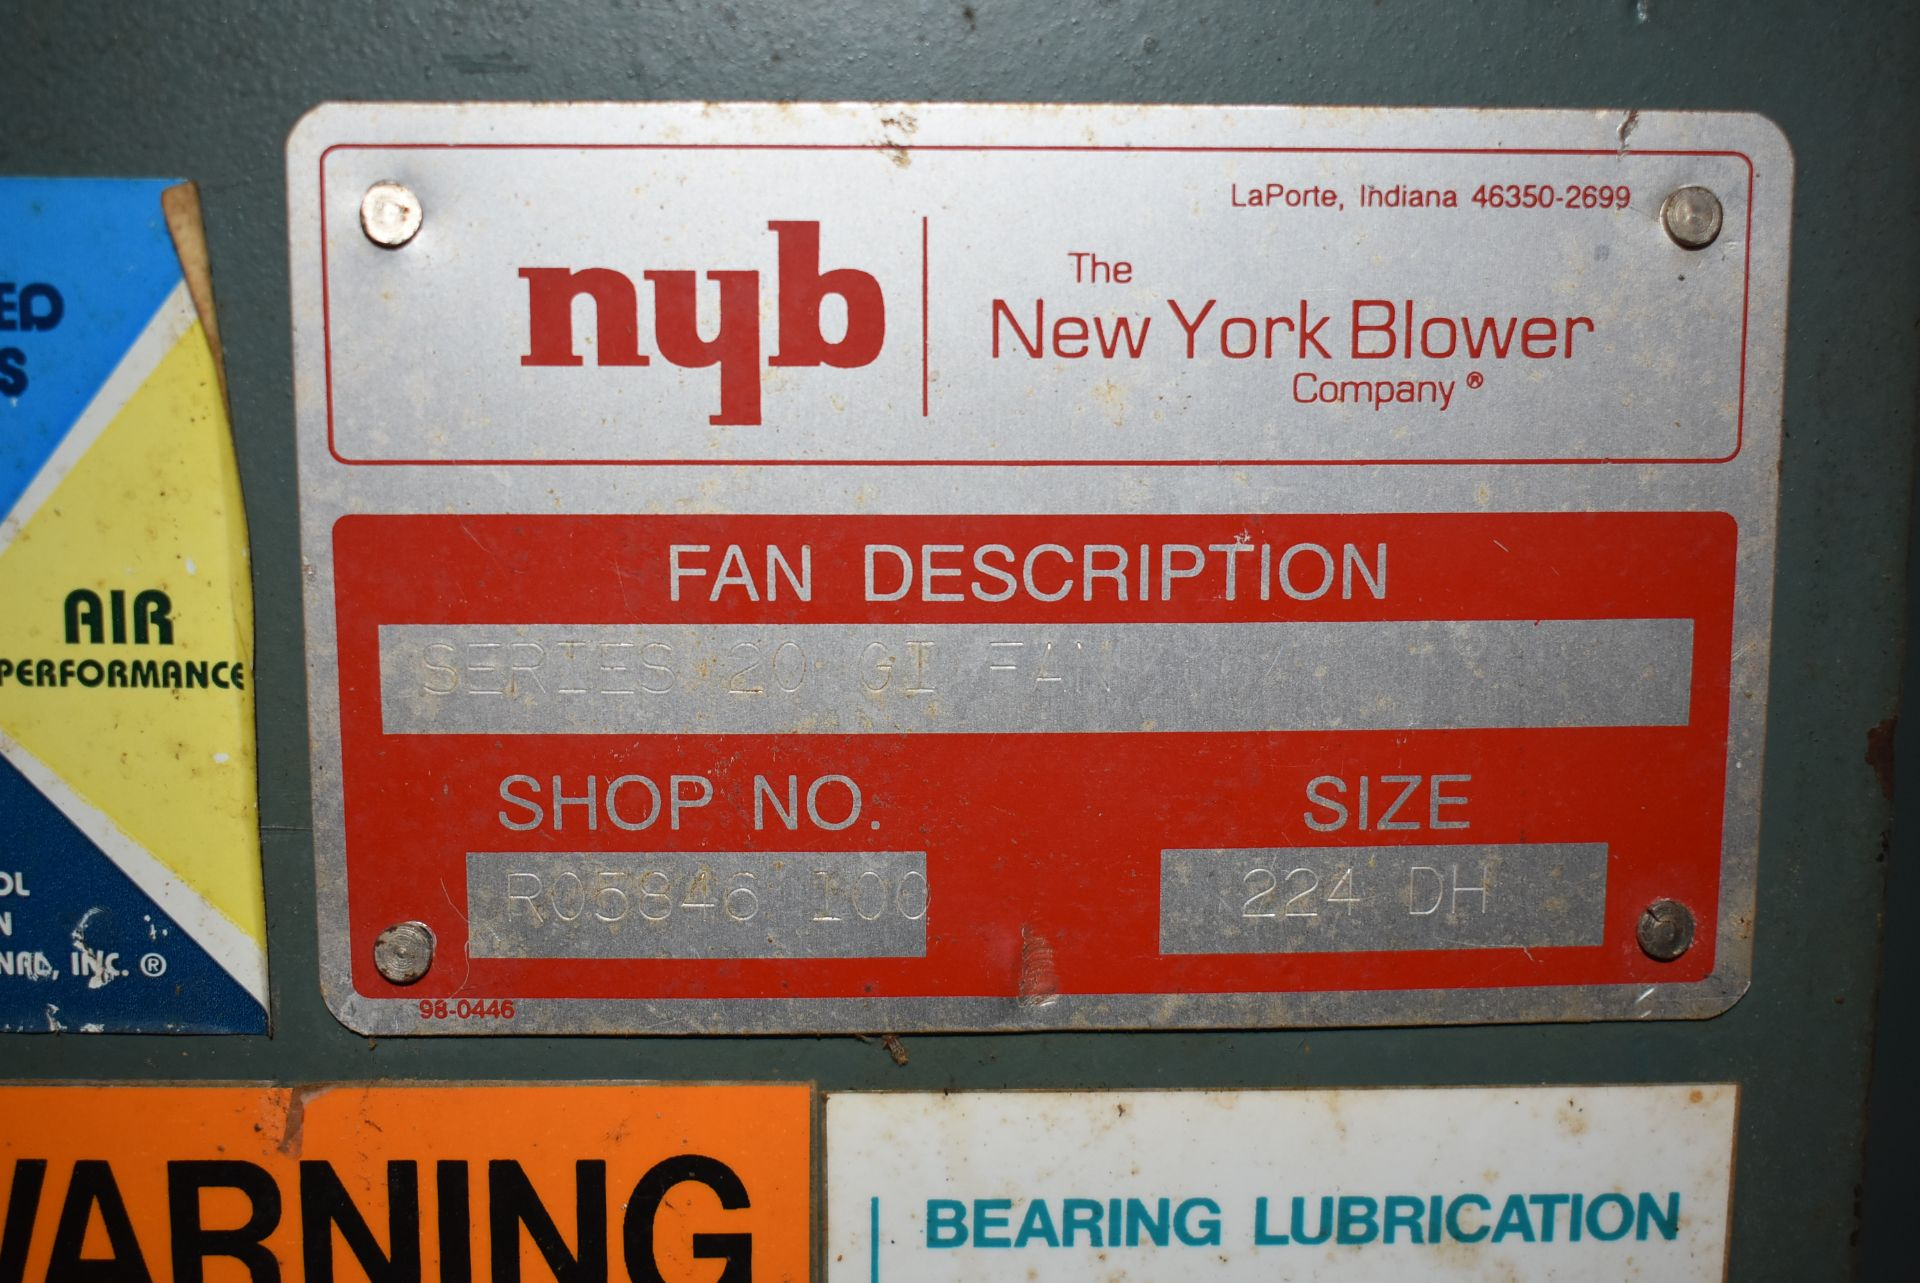 New York Blower, Size 224-OH w/15 HP Motor - Image 2 of 4